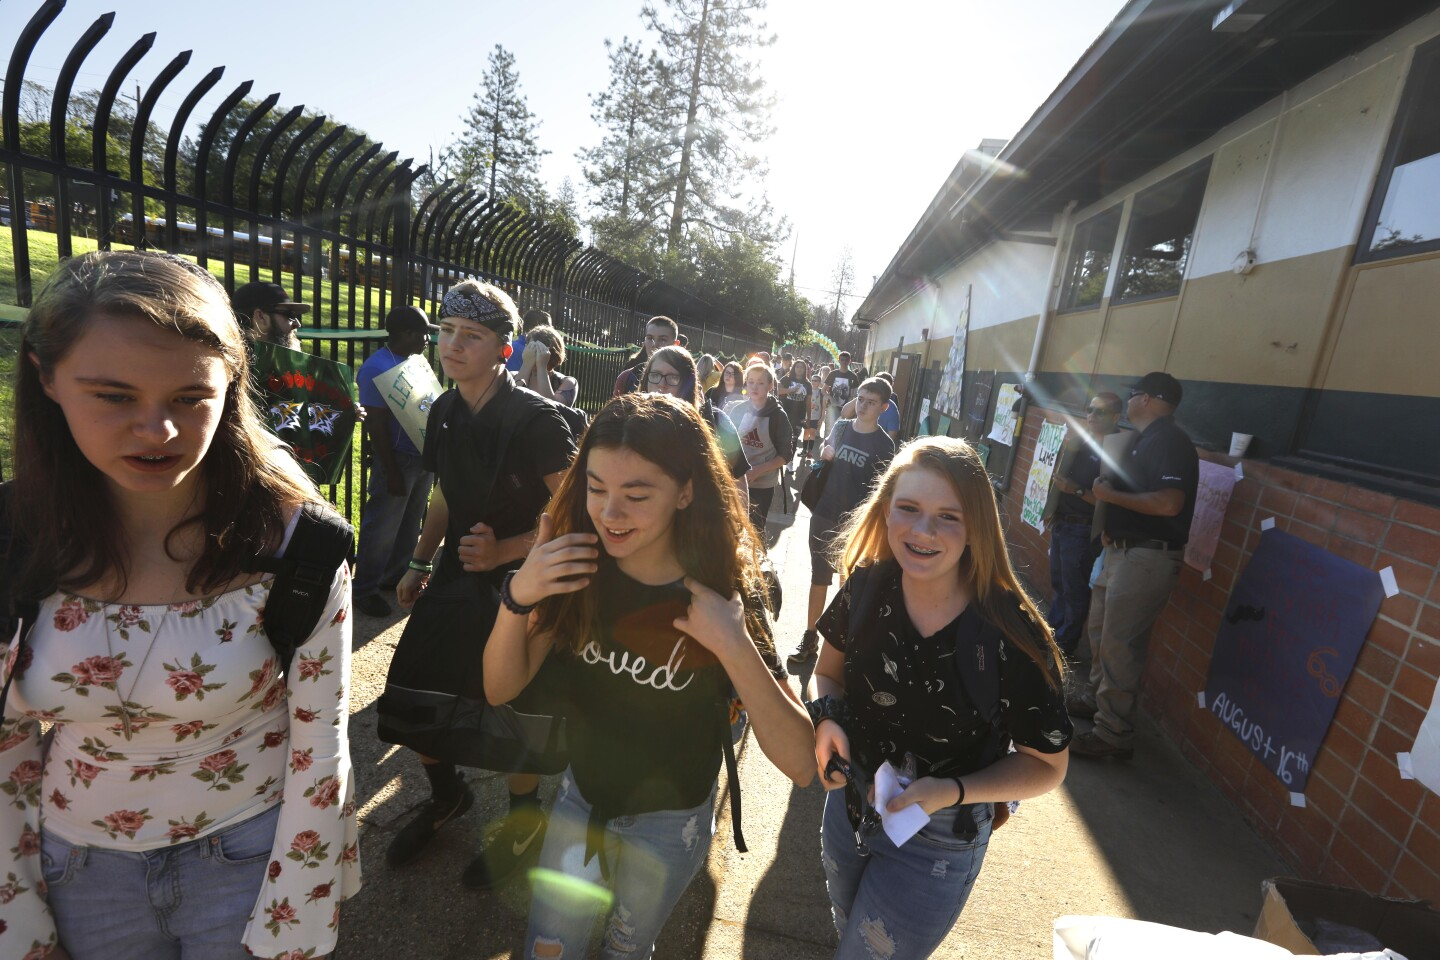 PARADISE, CA - AUGUST 15, 2019 - - Students return to class at Paradise High School months after the Camp Fire ravaged the community in Paradise, California on August 15, 2019. The Camp Fire was the deadliest and most destructive wildfire in California history. 84 people died in the fire and two other residents died later of their injuries. (Genaro Molina / Los Angeles Times)